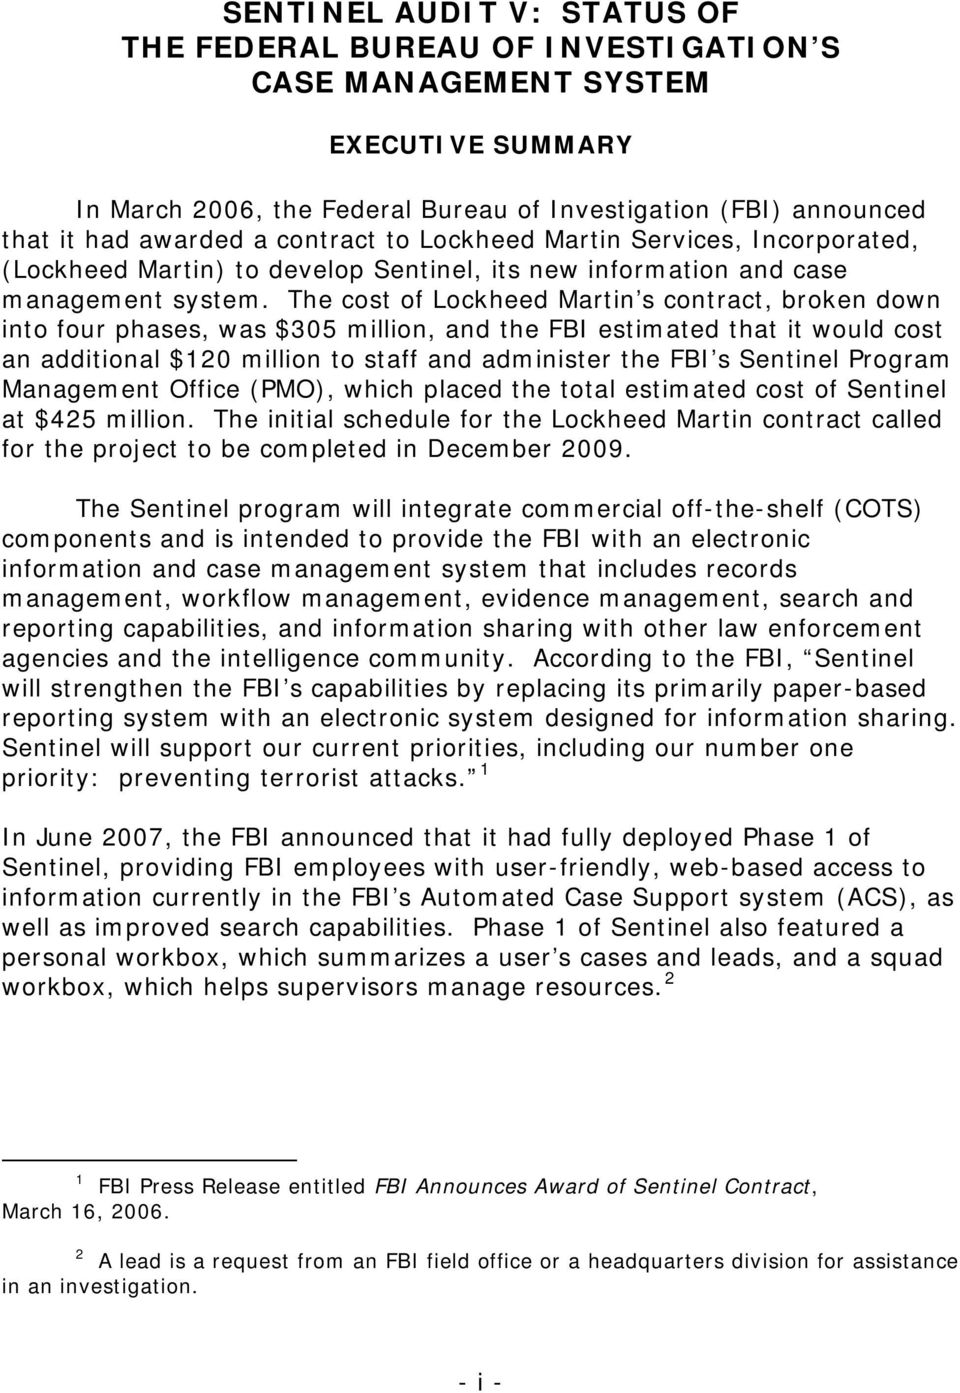 The cost of Lockheed Martin s contract, broken down into four phases, was $305 million, and the FBI estimated that it would cost an additional $120 million to staff and administer the FBI s Sentinel